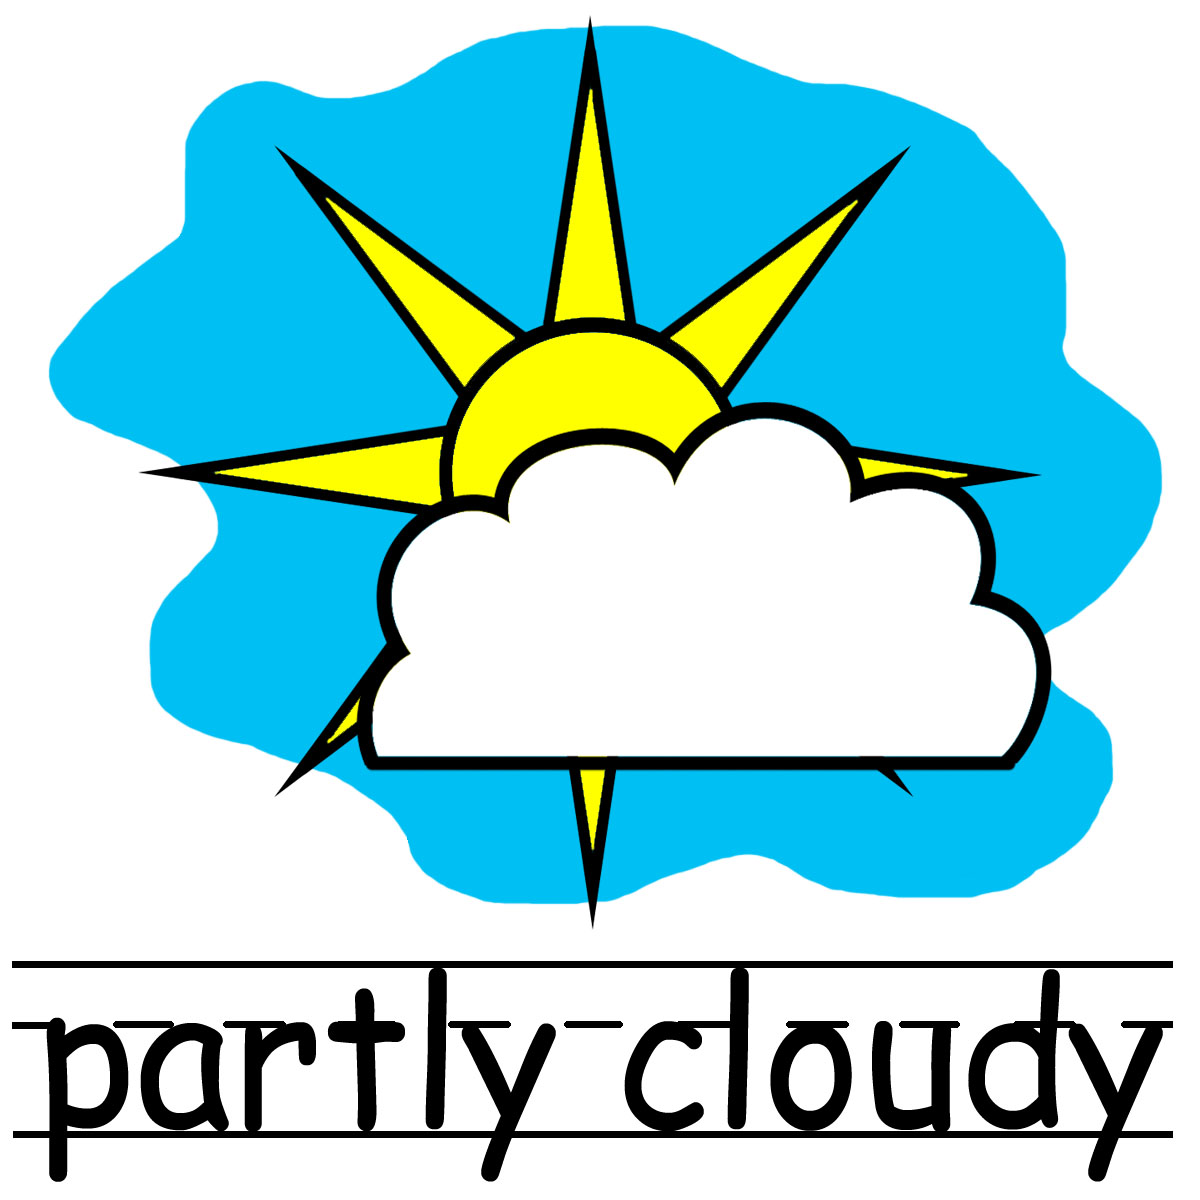 Wind clipart foggy weather Clipart Images Weather Weather Clip